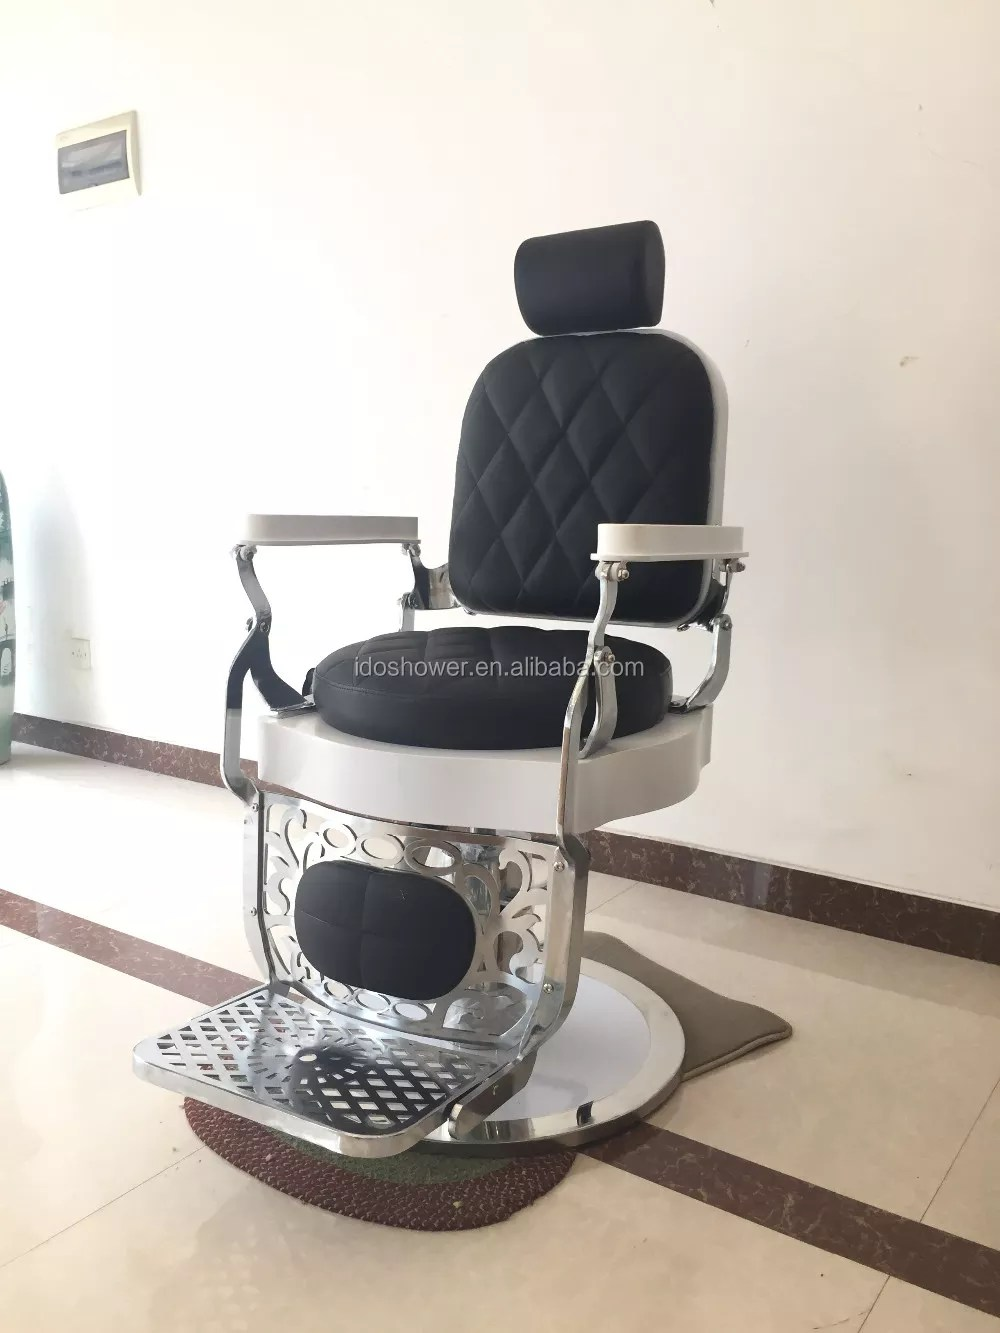 Koken Barber Chairs Barber Chair Parts With Antique Koken Barber Chair For Cheap Barber Chair Buy Cheap Barber Chair Antique Koken Barber Chair Barber Chair Parts With